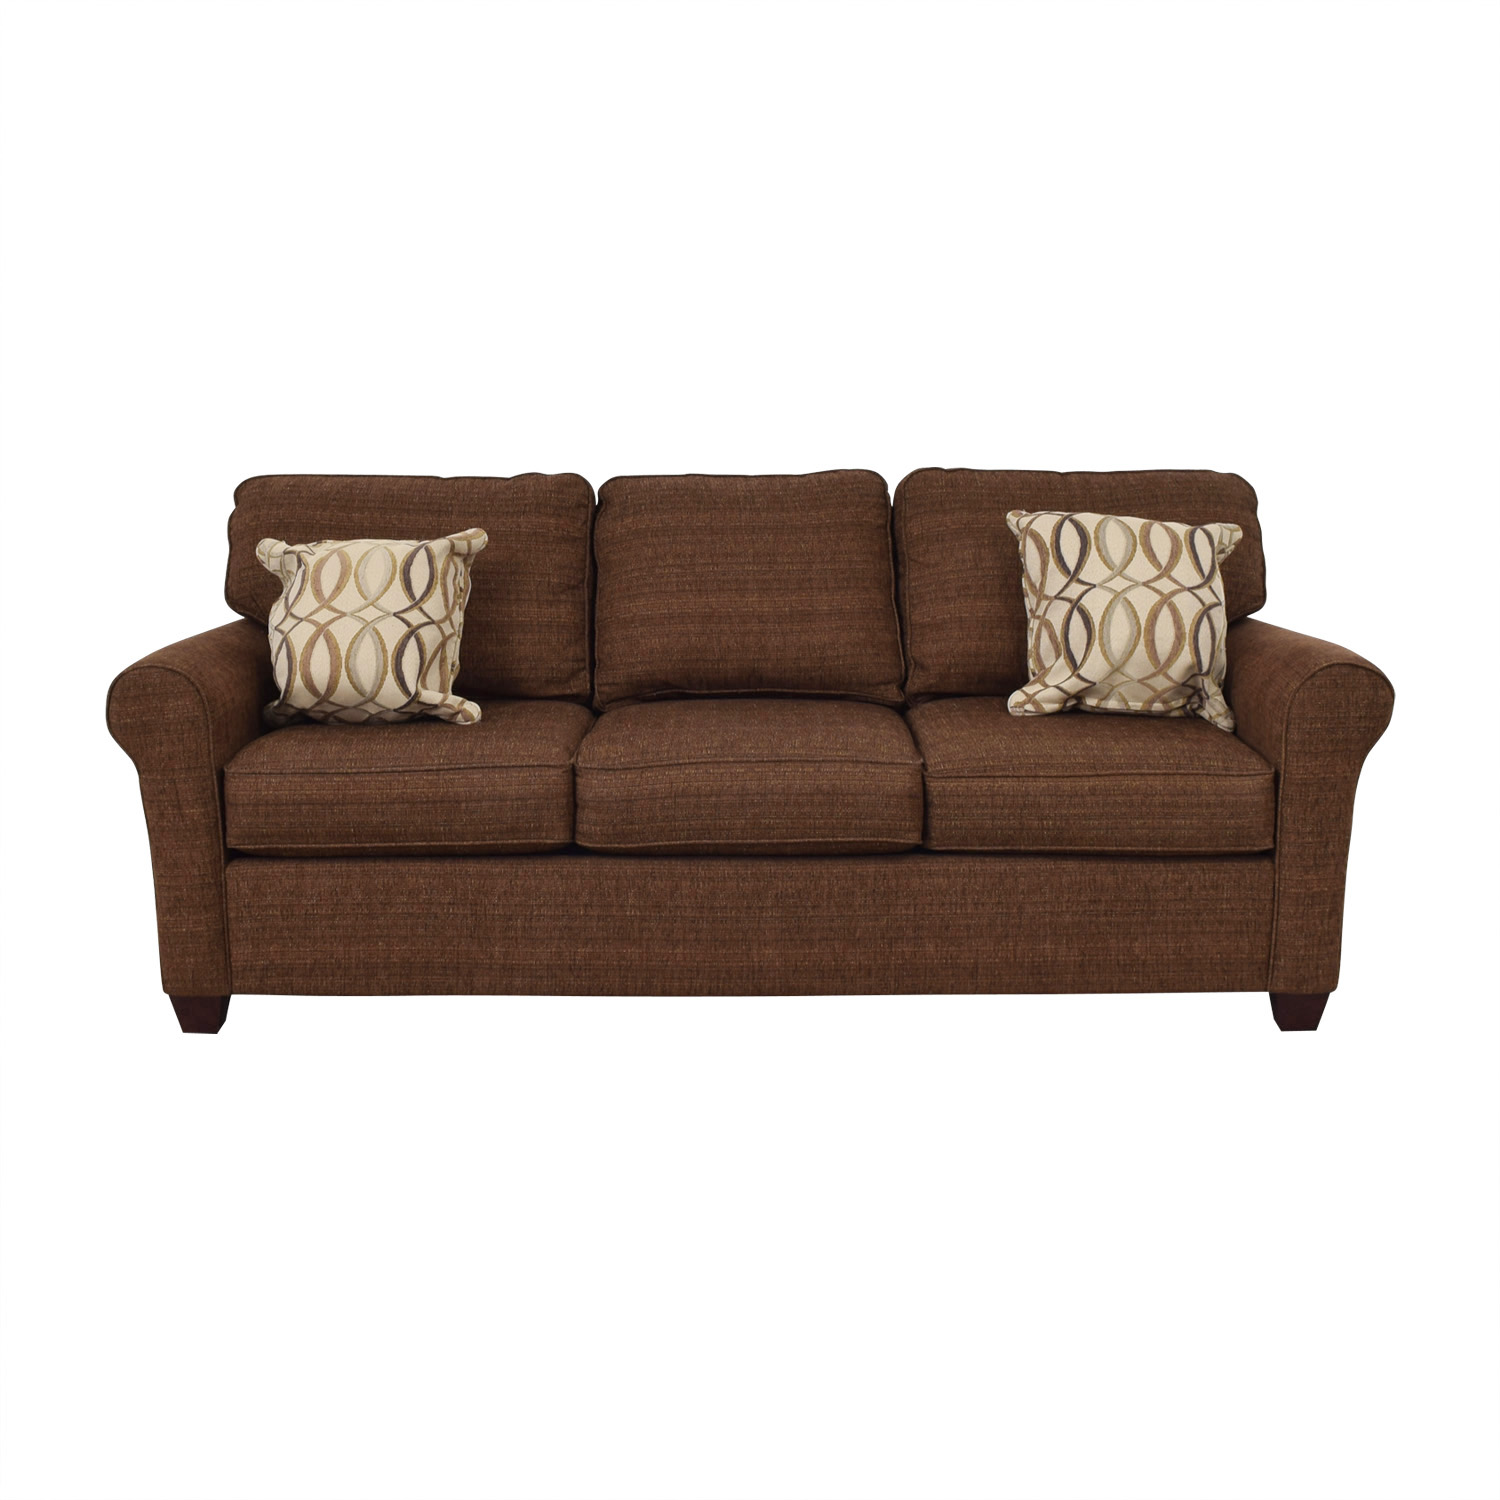 66 Off Bett Furniture Brown Tweed Three Cushion Sofa Sofas